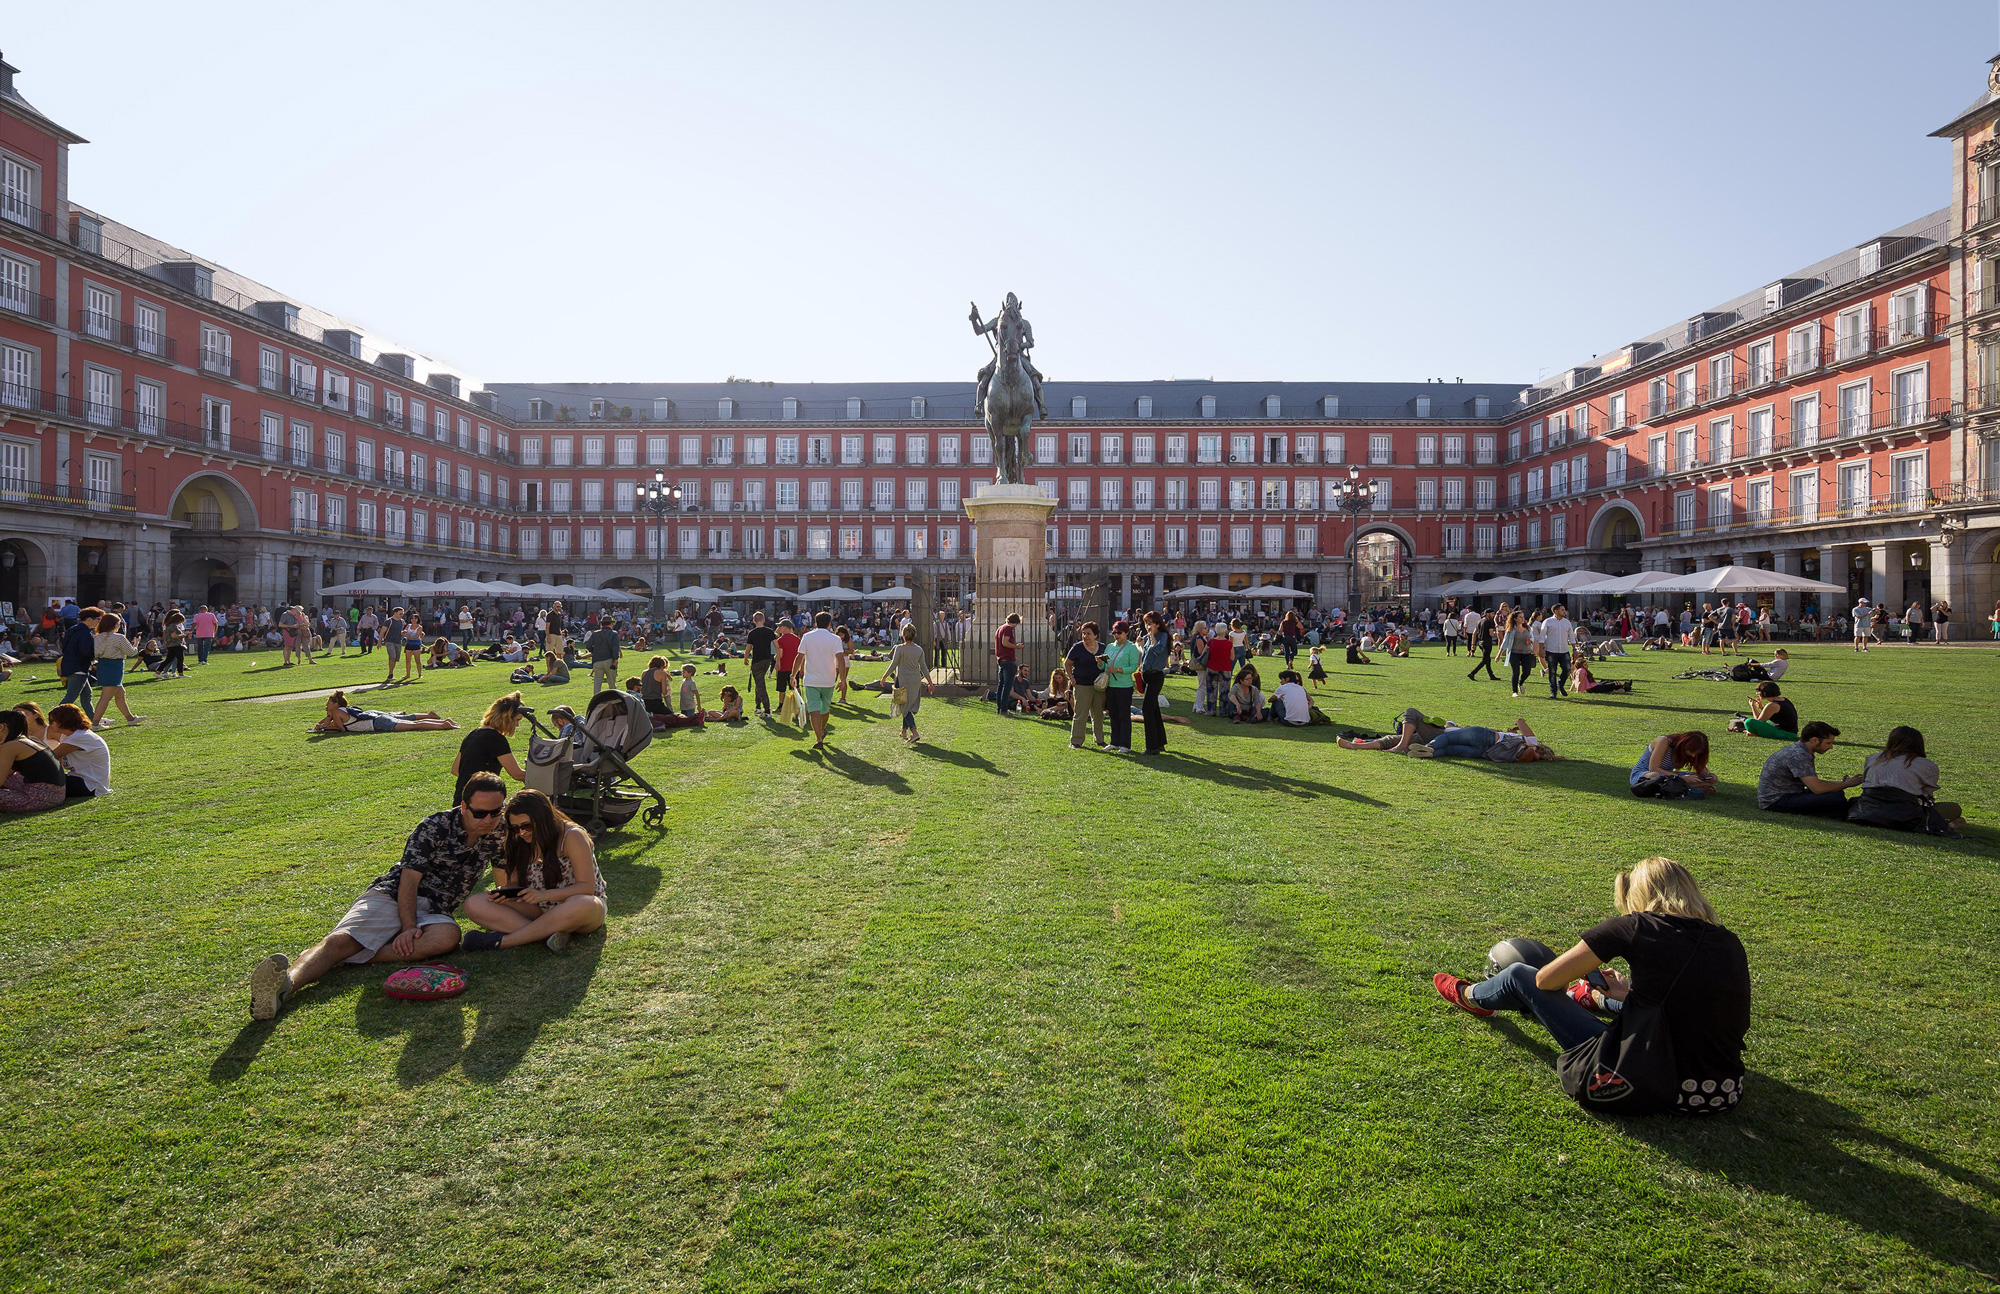 A Madrid Plaza Transformed Into a Temporary Park With Over 35,000 Square Feet of Grass